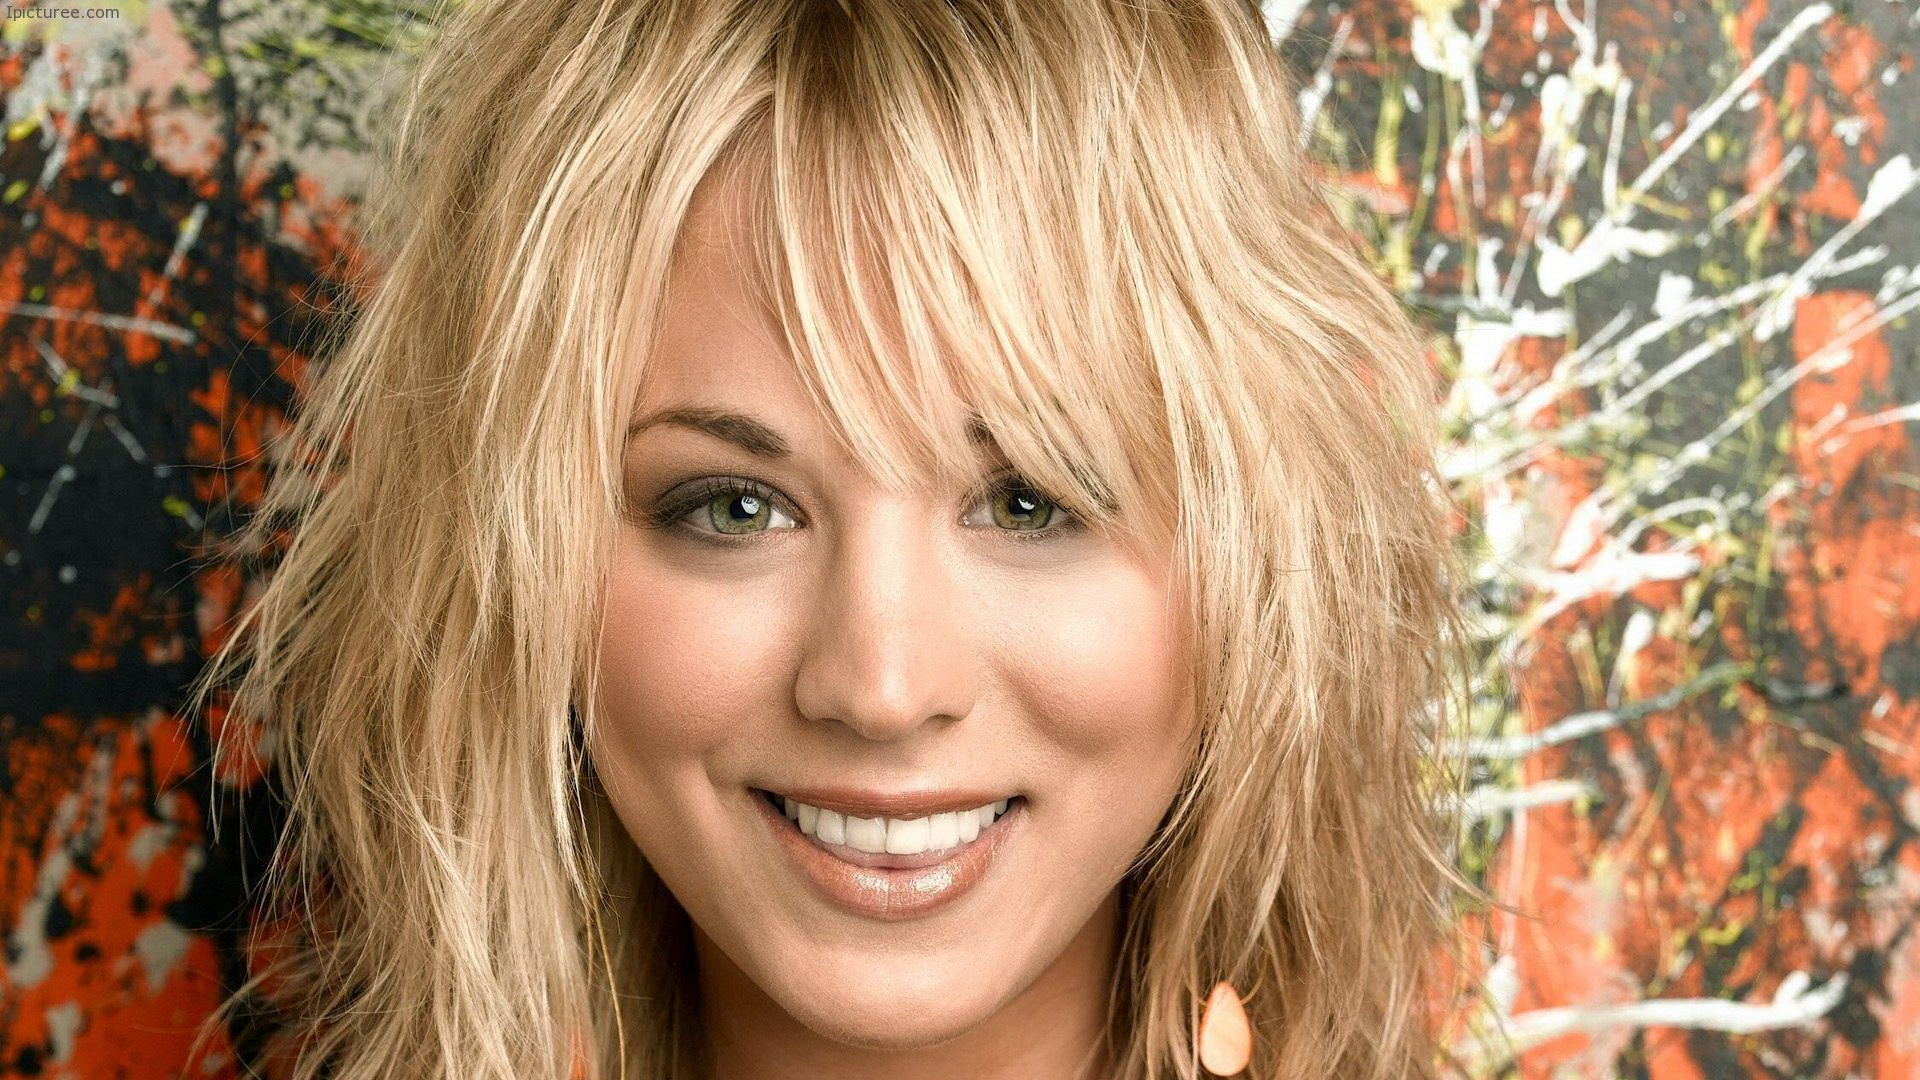 Kaley Cuoco Smile Wallpaper